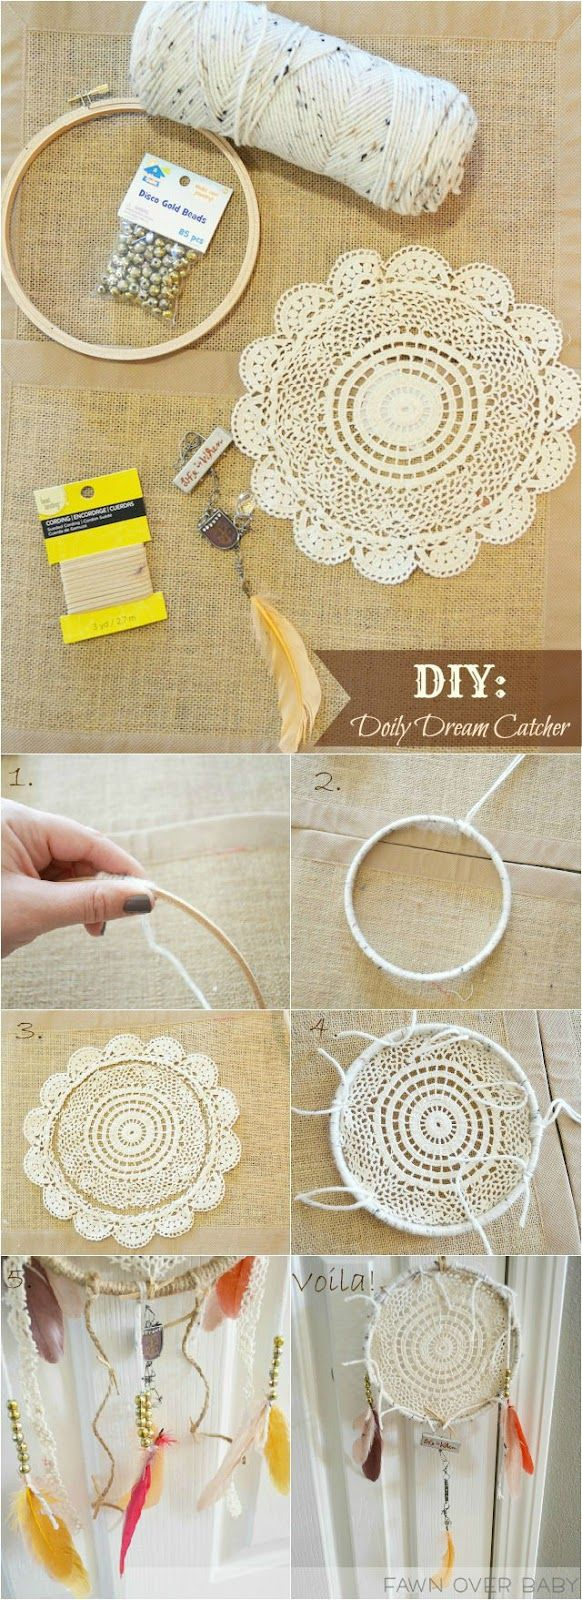 #DIY: Doily #Dream Catcher/Fawn Over Baby